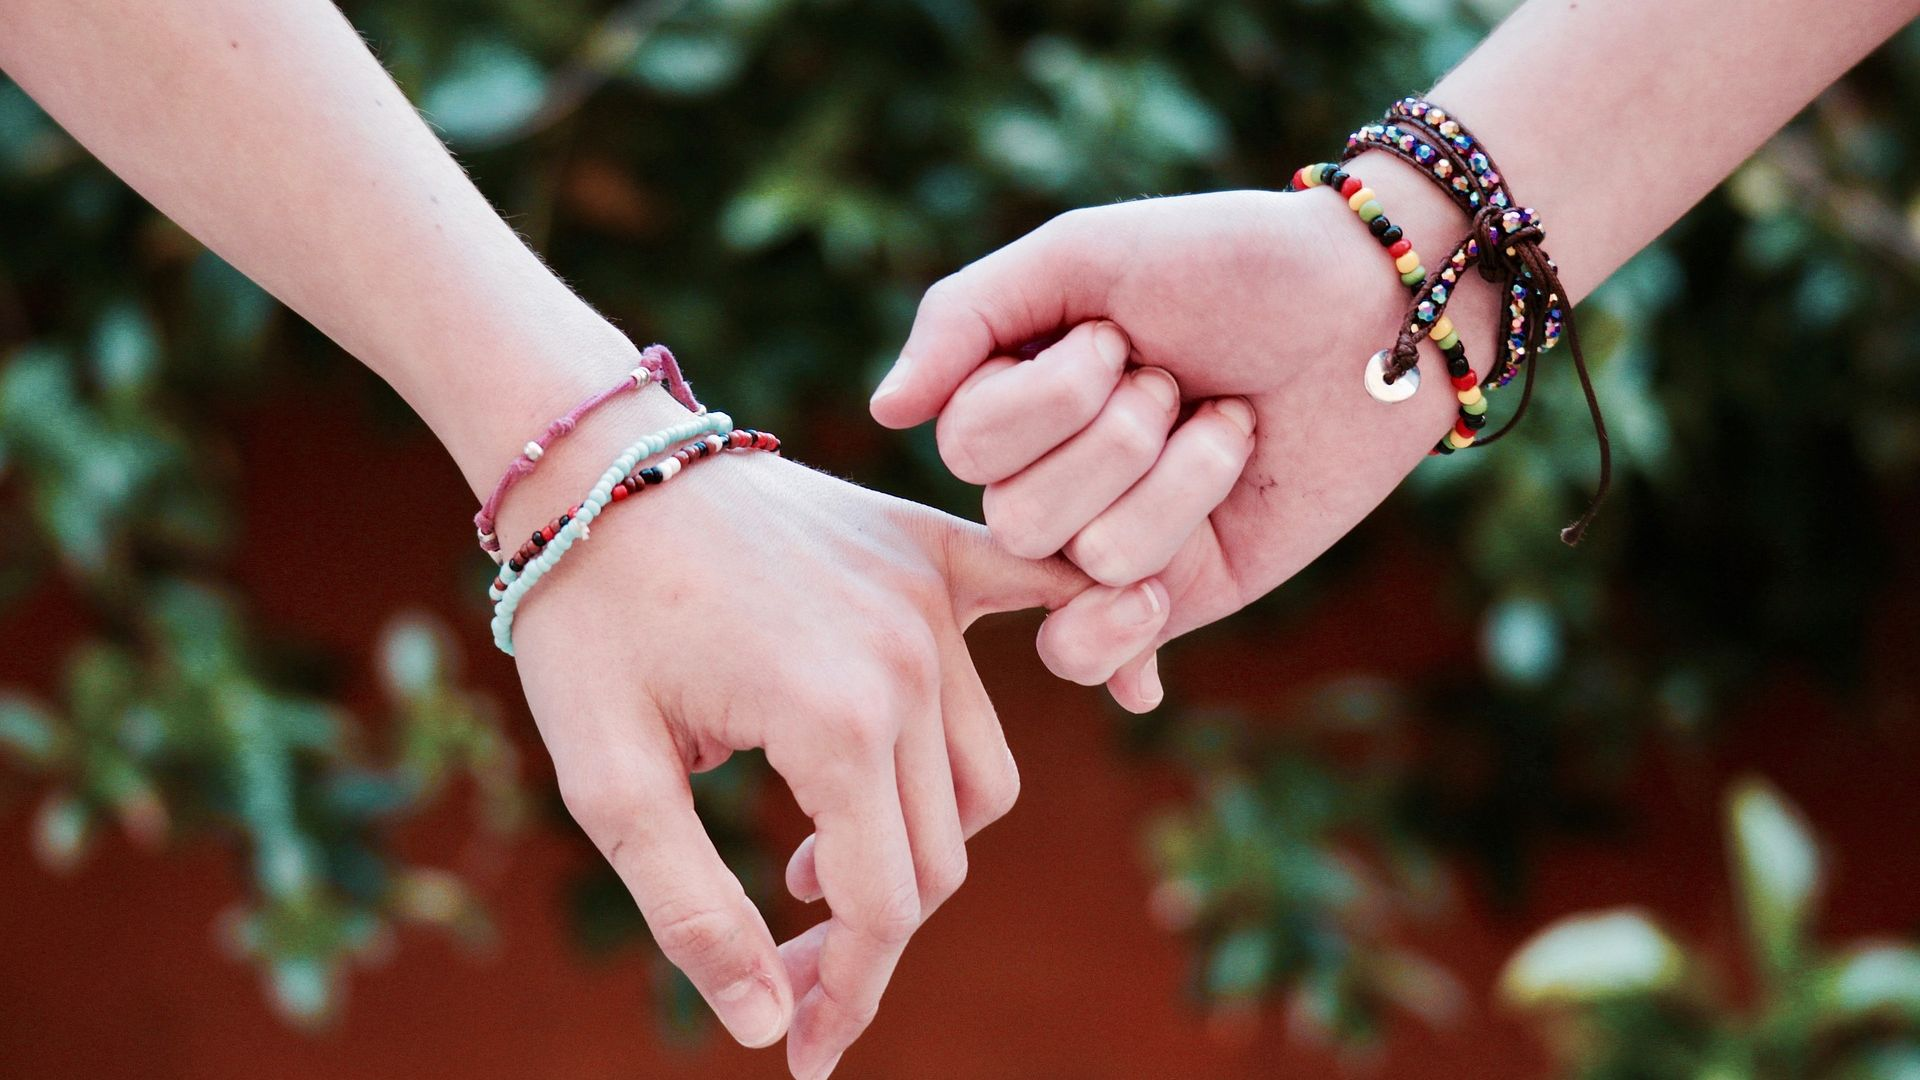 Friendship Hands with Bracelets Wallpaper   Wallpaper Stream 1920x1080